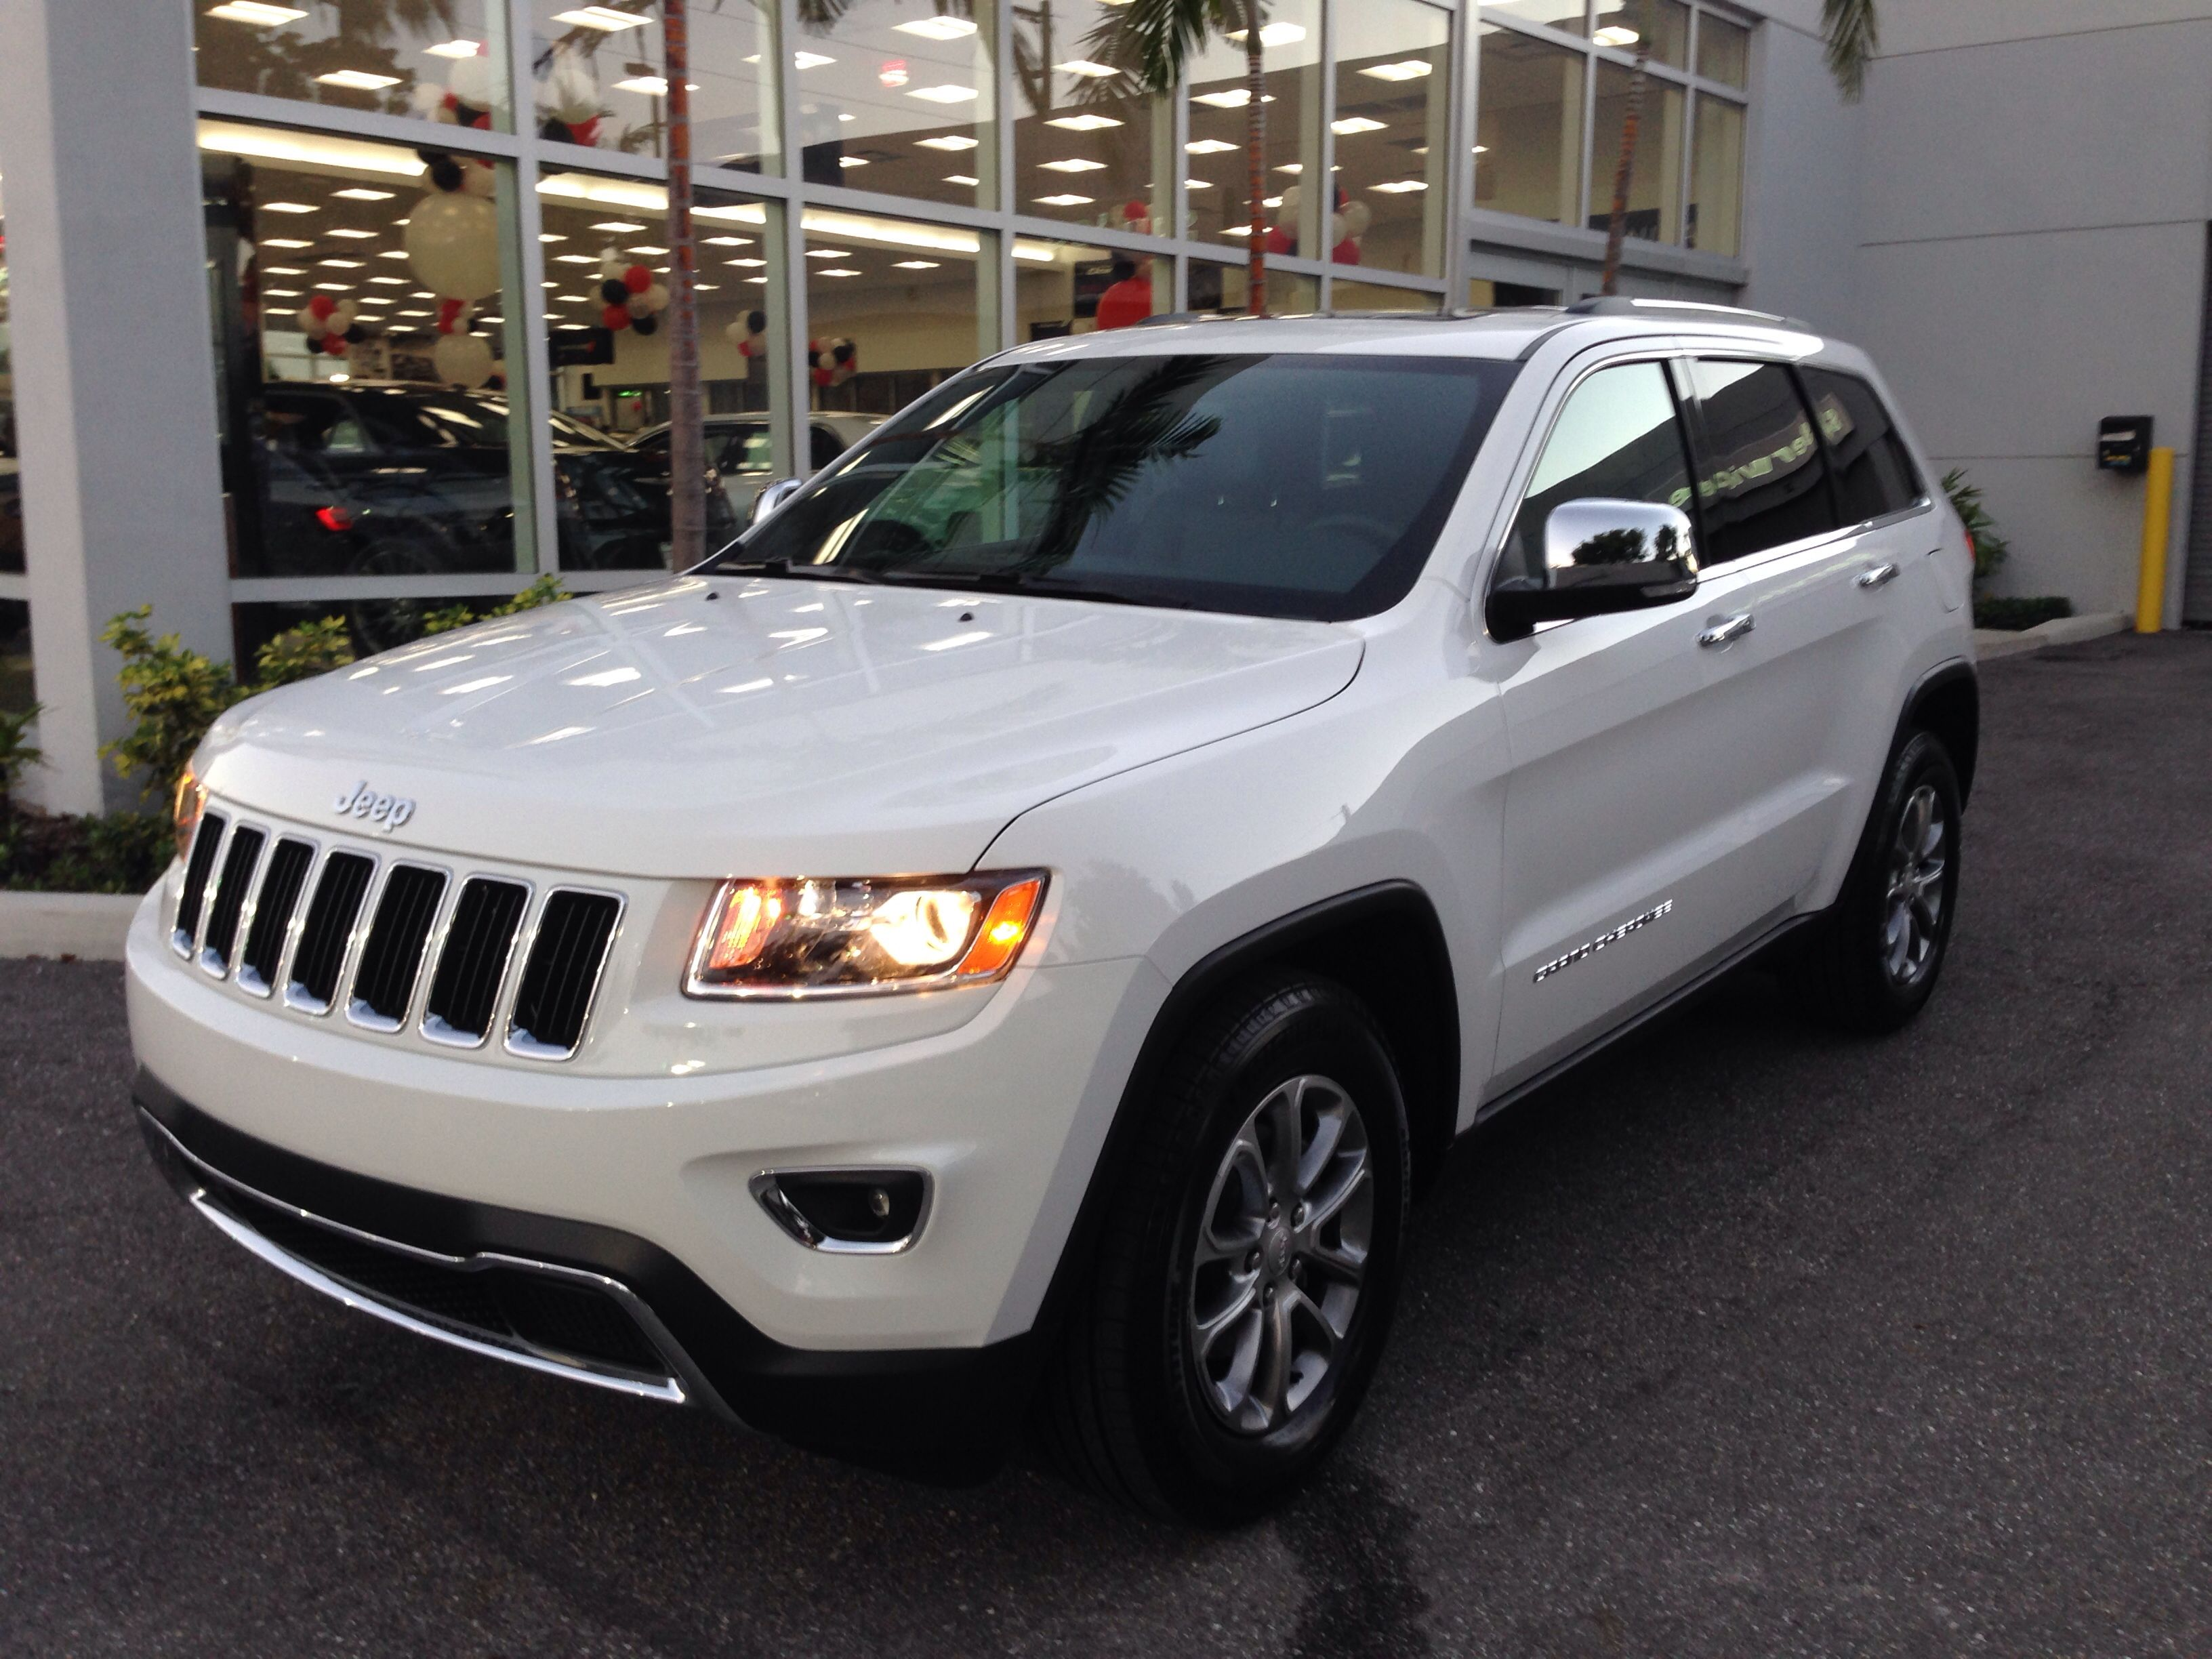 2014 Jeep Grand Cherokee Limited Loved It, But Negative On The 17 City/25  Hwy. A Gain Of Only 4 Mpg